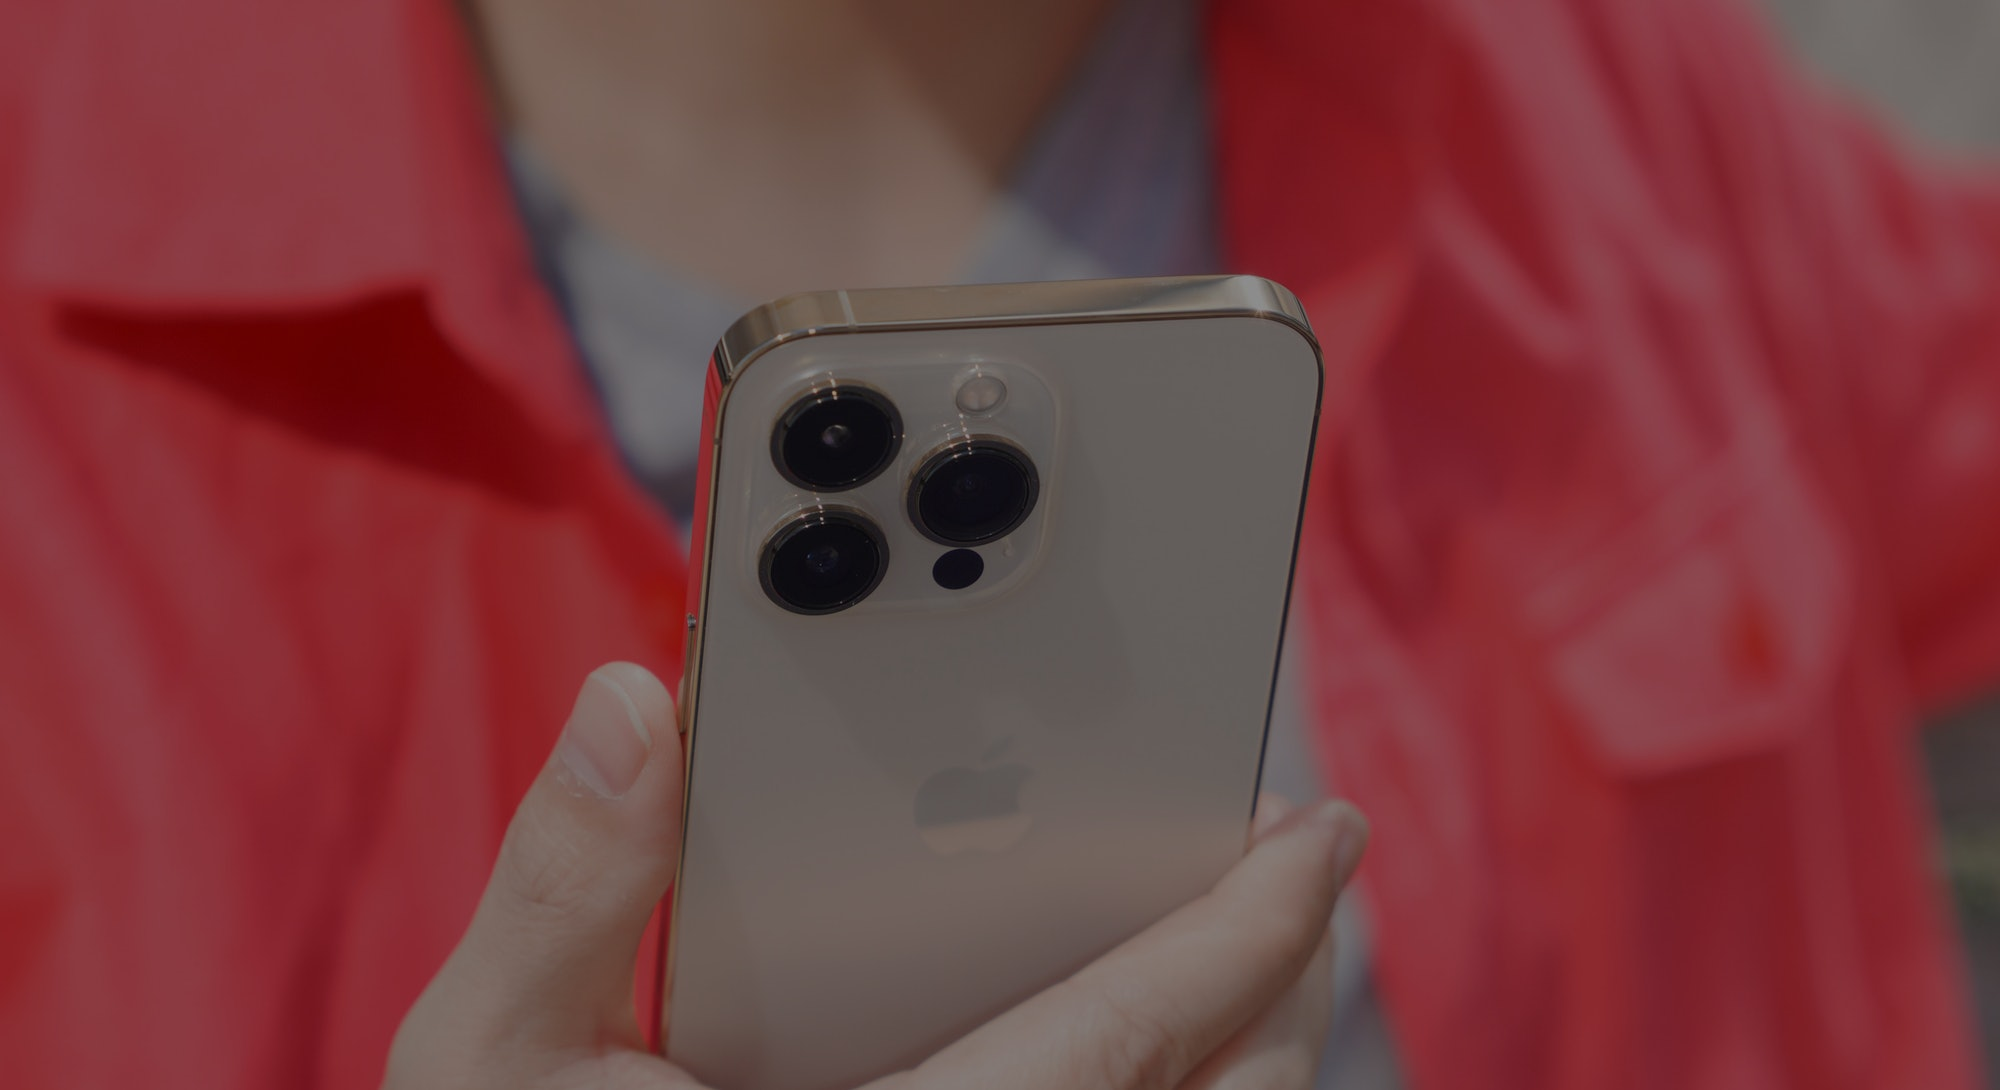 iPhone 13 Pros review: The greatest iPhones ever except for this one annoying camera 'feature'